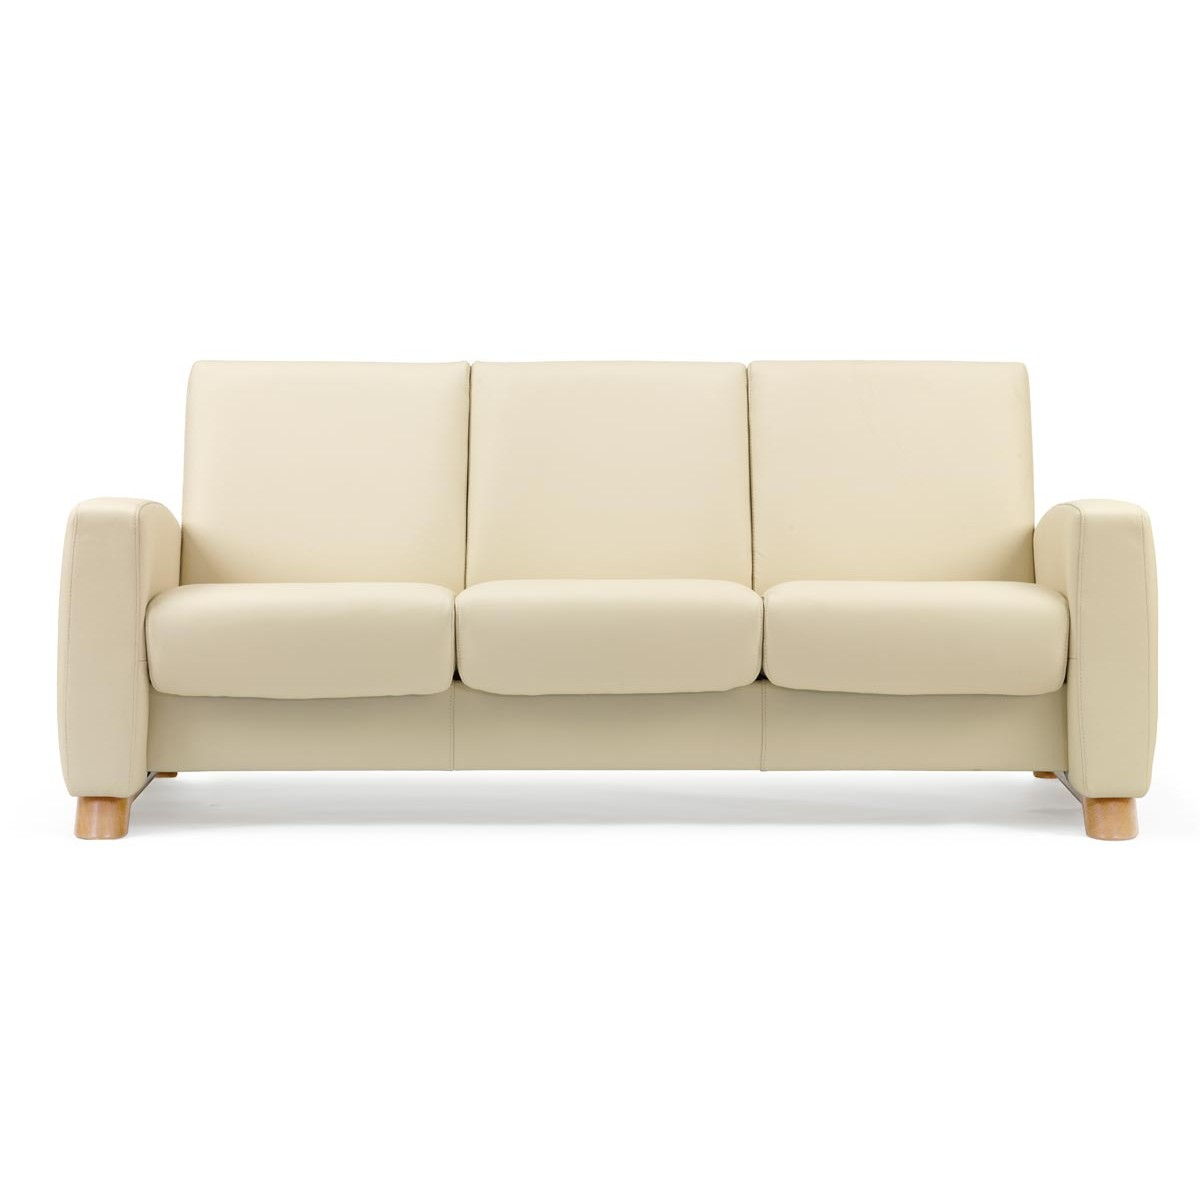 Popular 194 list low back sofa for Low couch